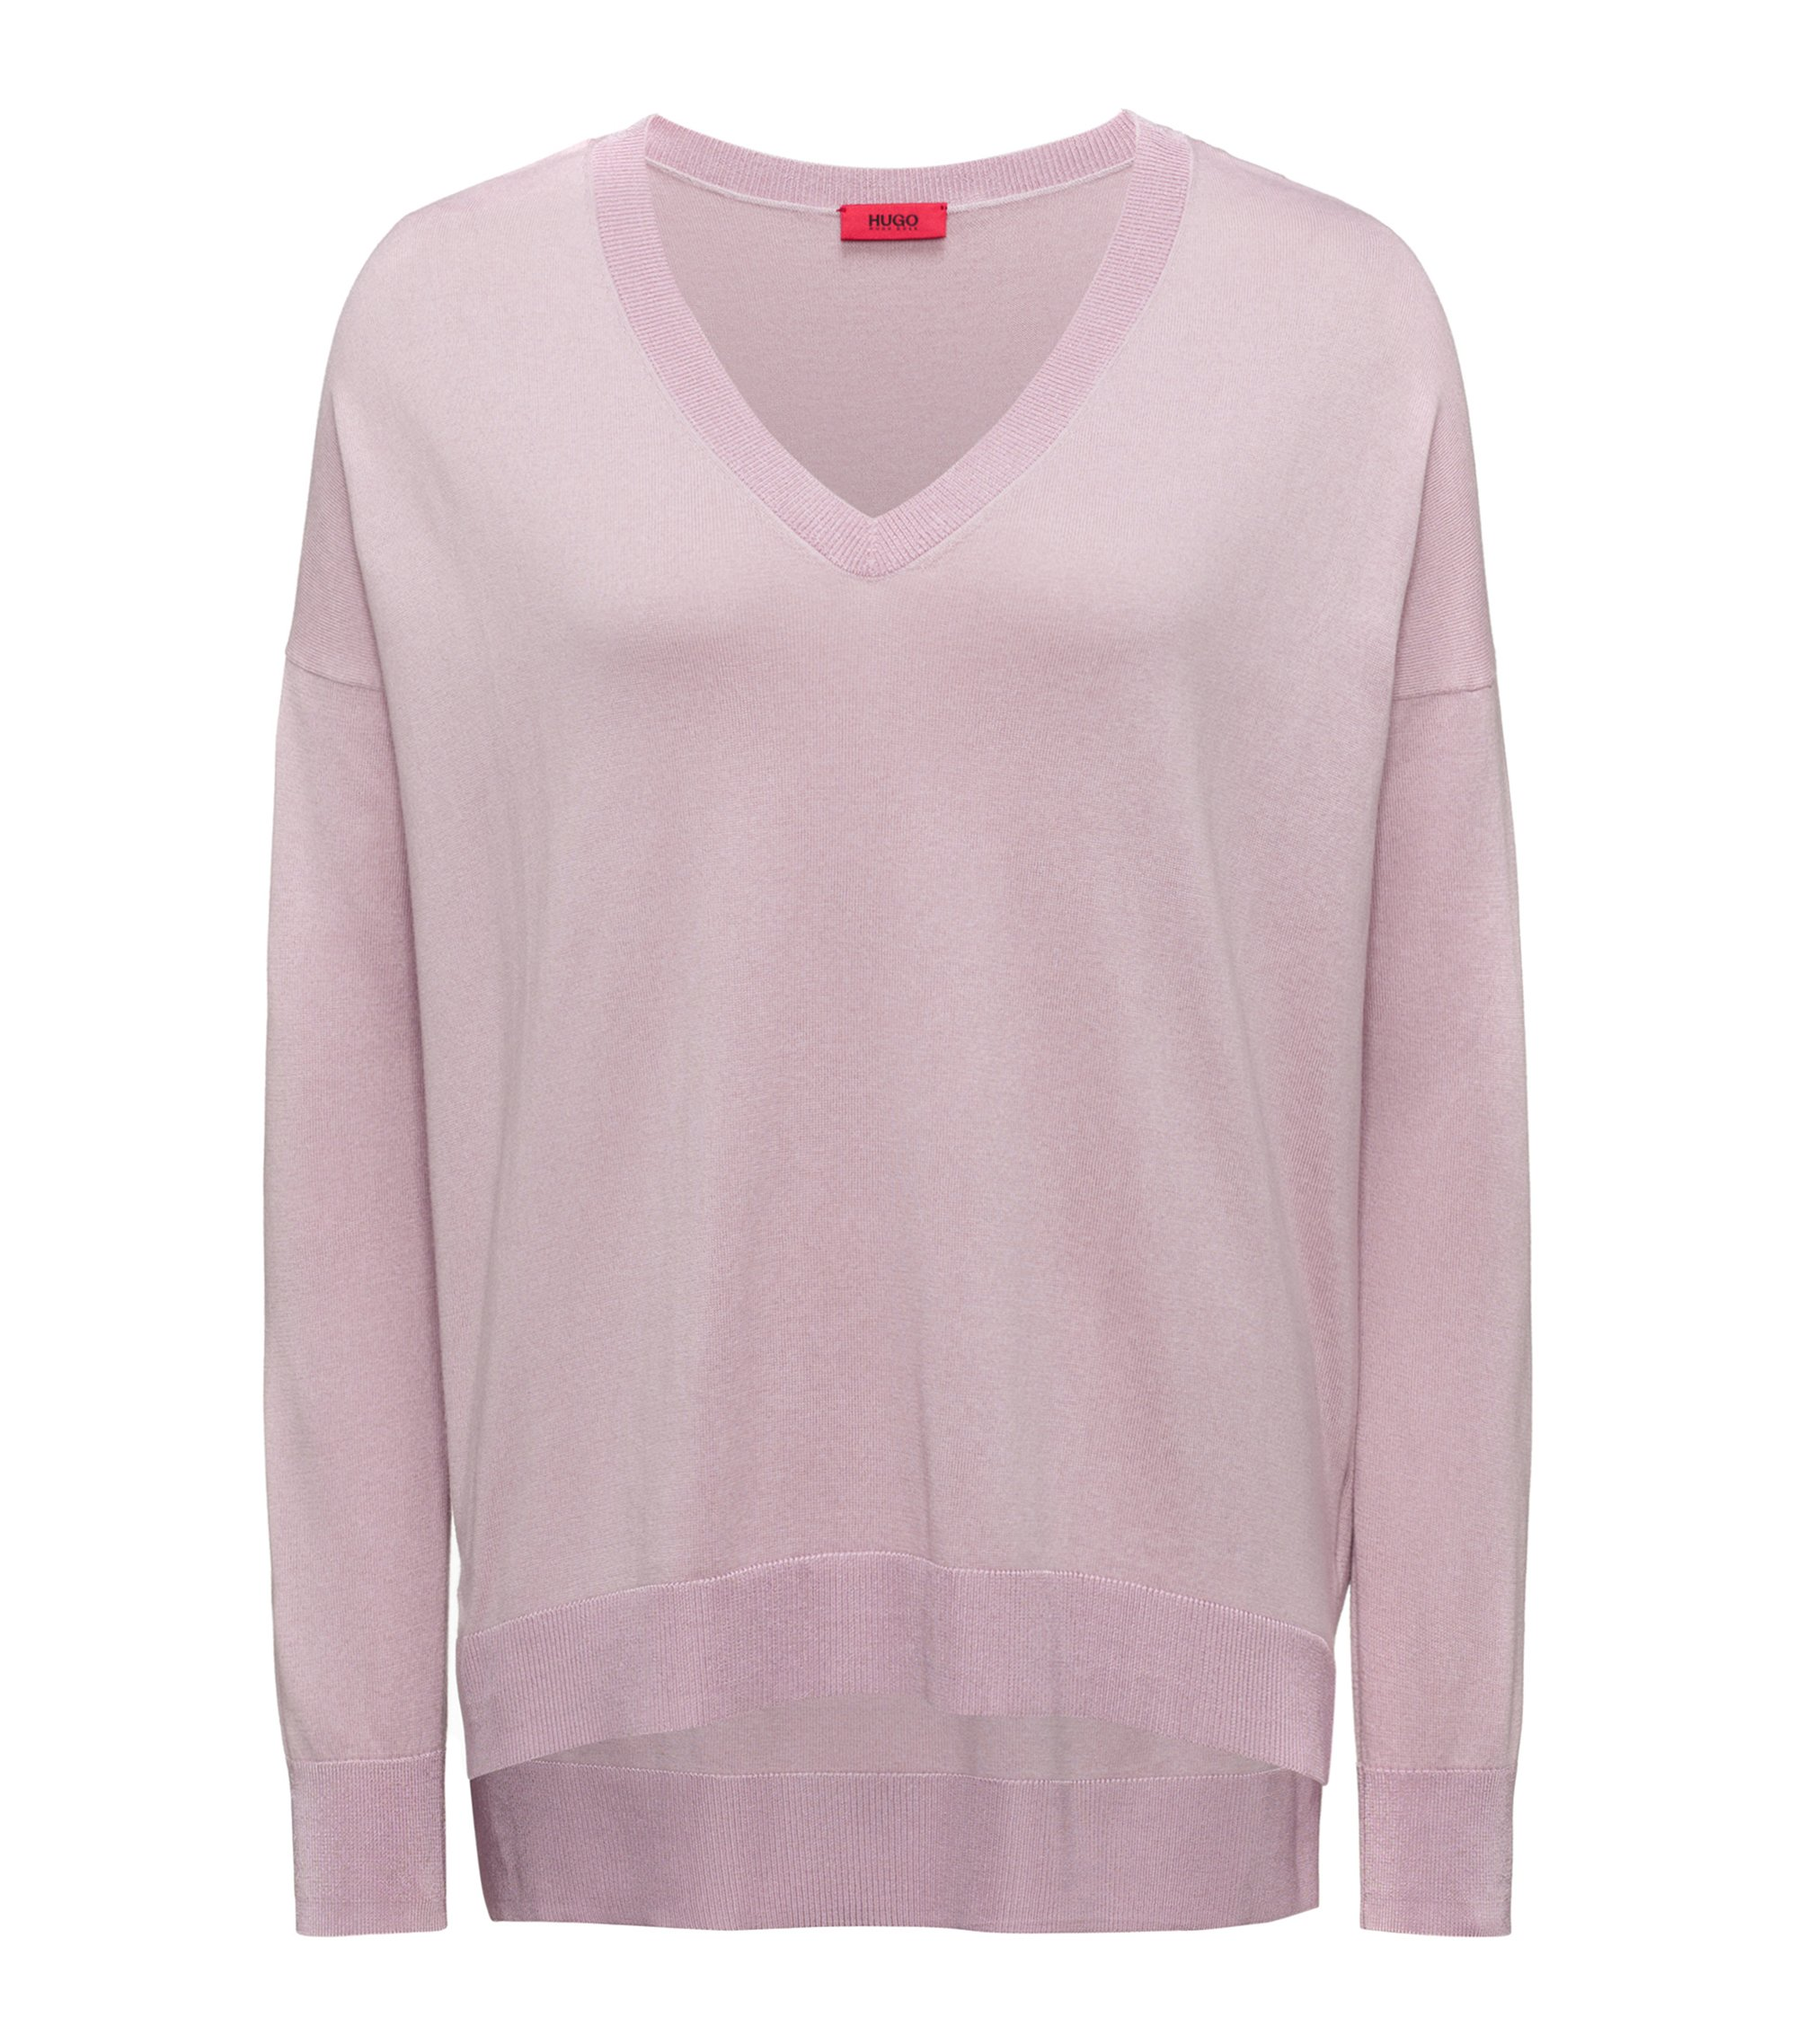 Oversized-fit V-neck sweater in a silk blend, light pink